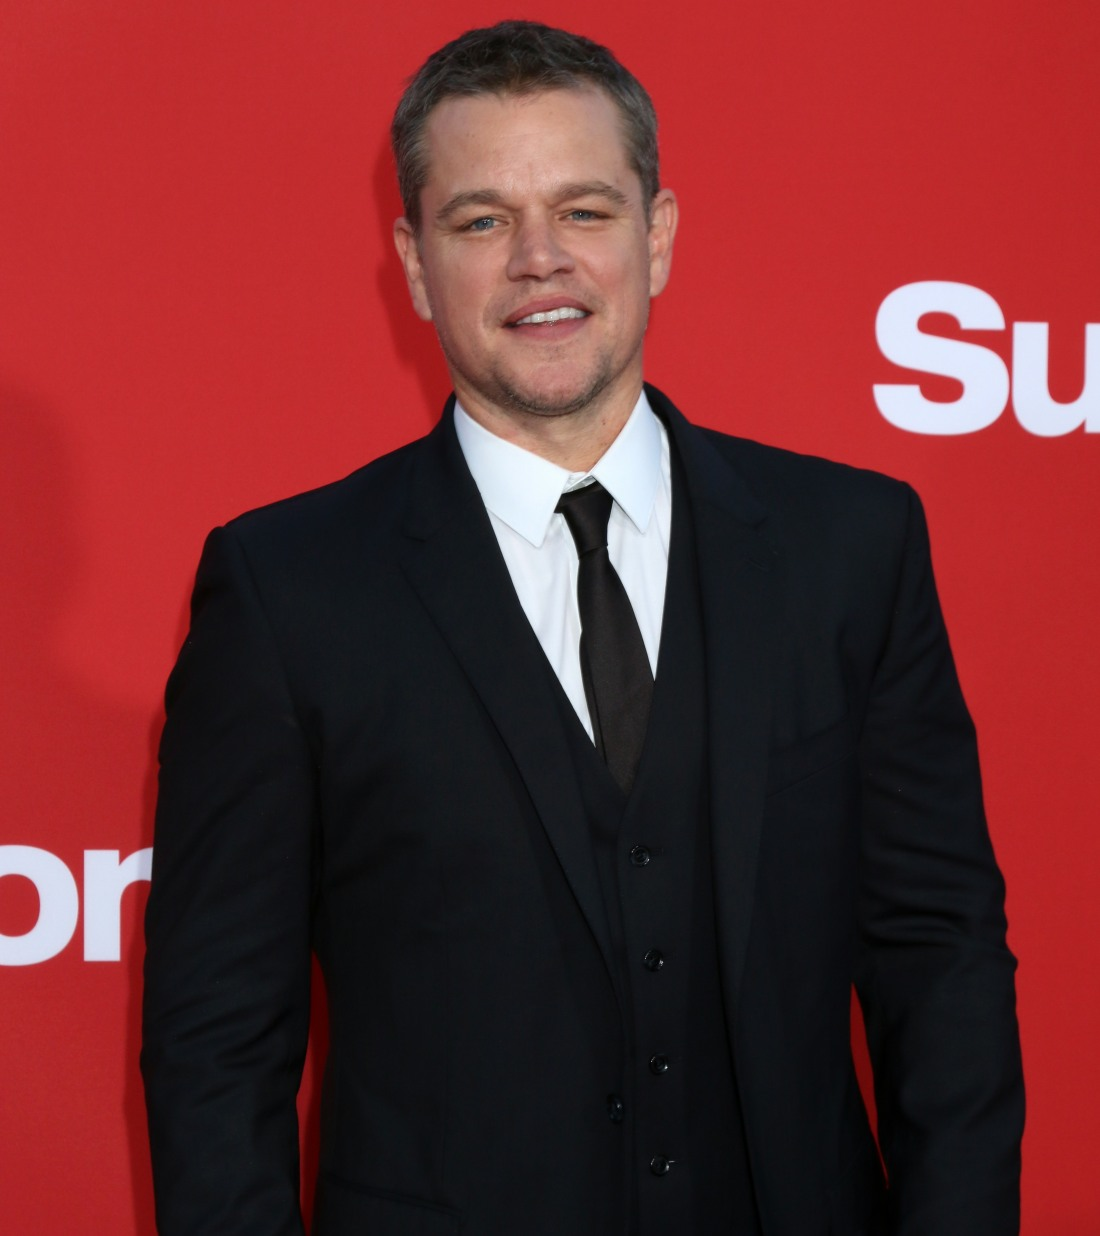 Matt Damon: 'I really wish I'd listened a lot more before I weighed in' on #MeToo